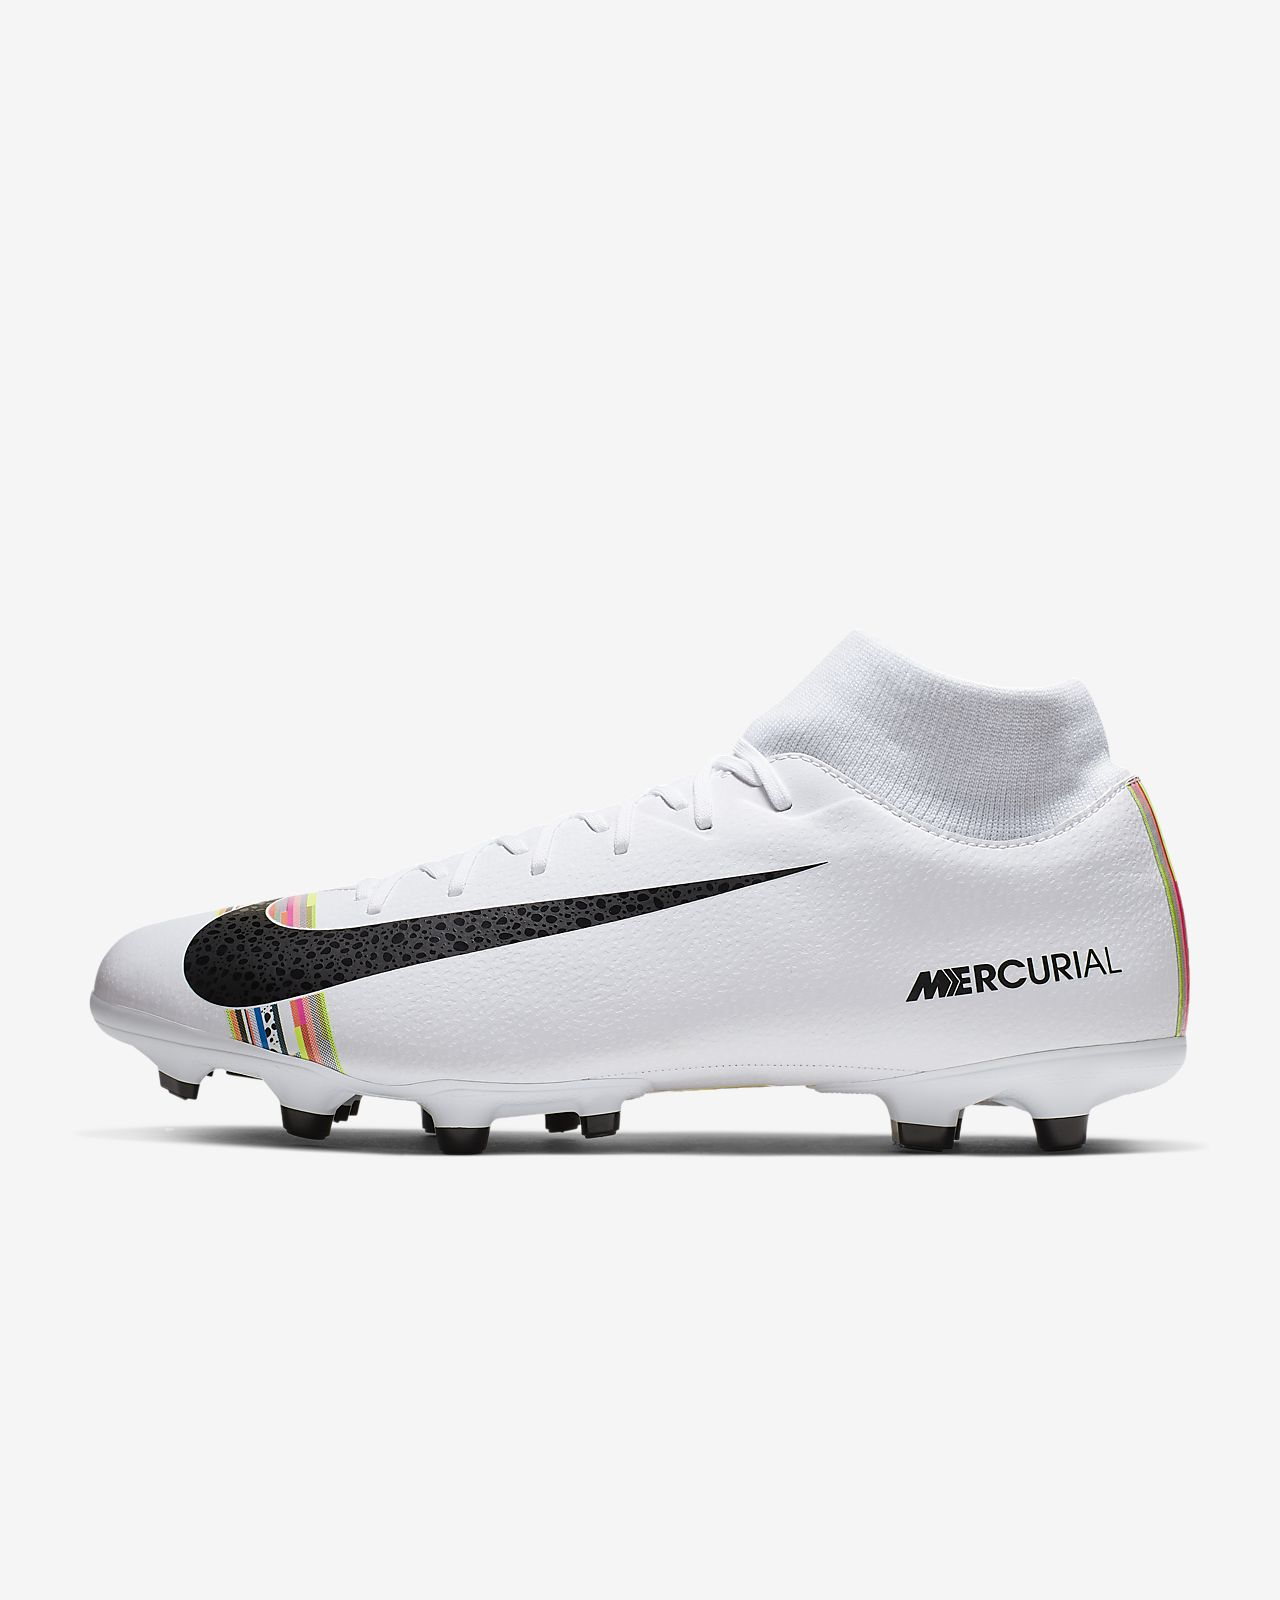 Nike Mercurial Superfly 6 Academy LVL UP MG Botas de fútbol para múltiples superficies